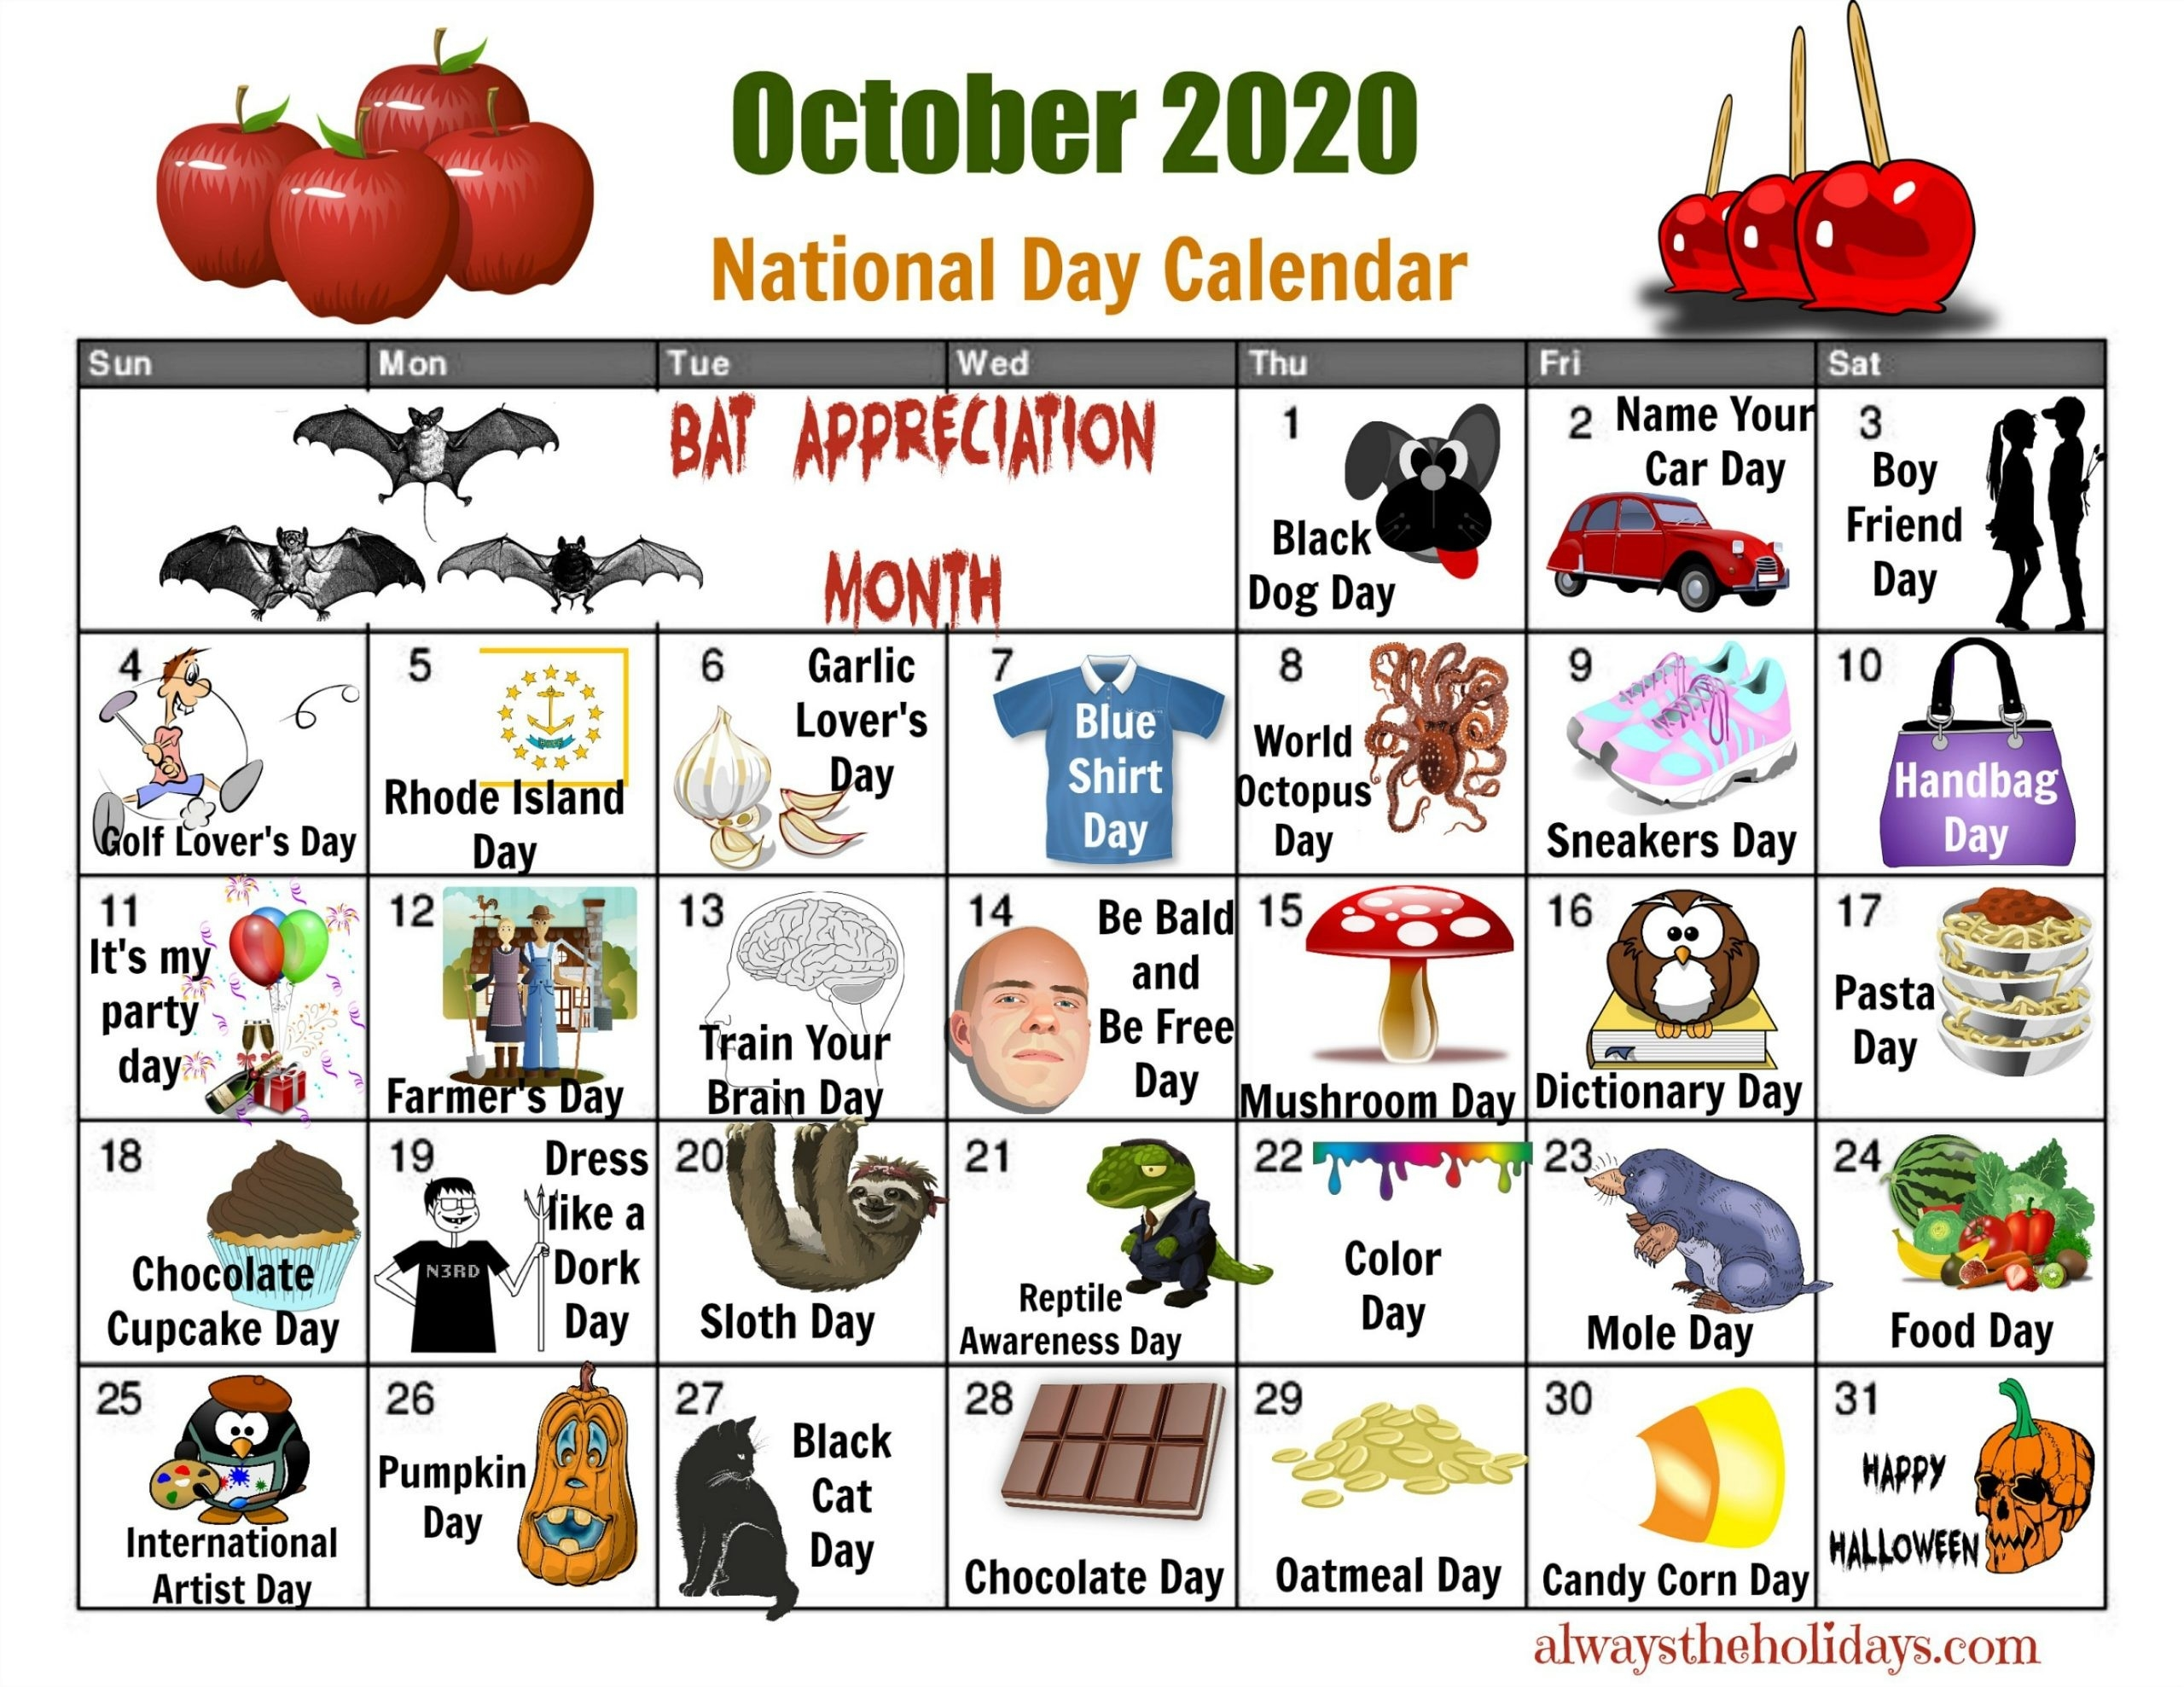 October National Day Calendar - Free Printable Calendars  Printable National Day List 2020